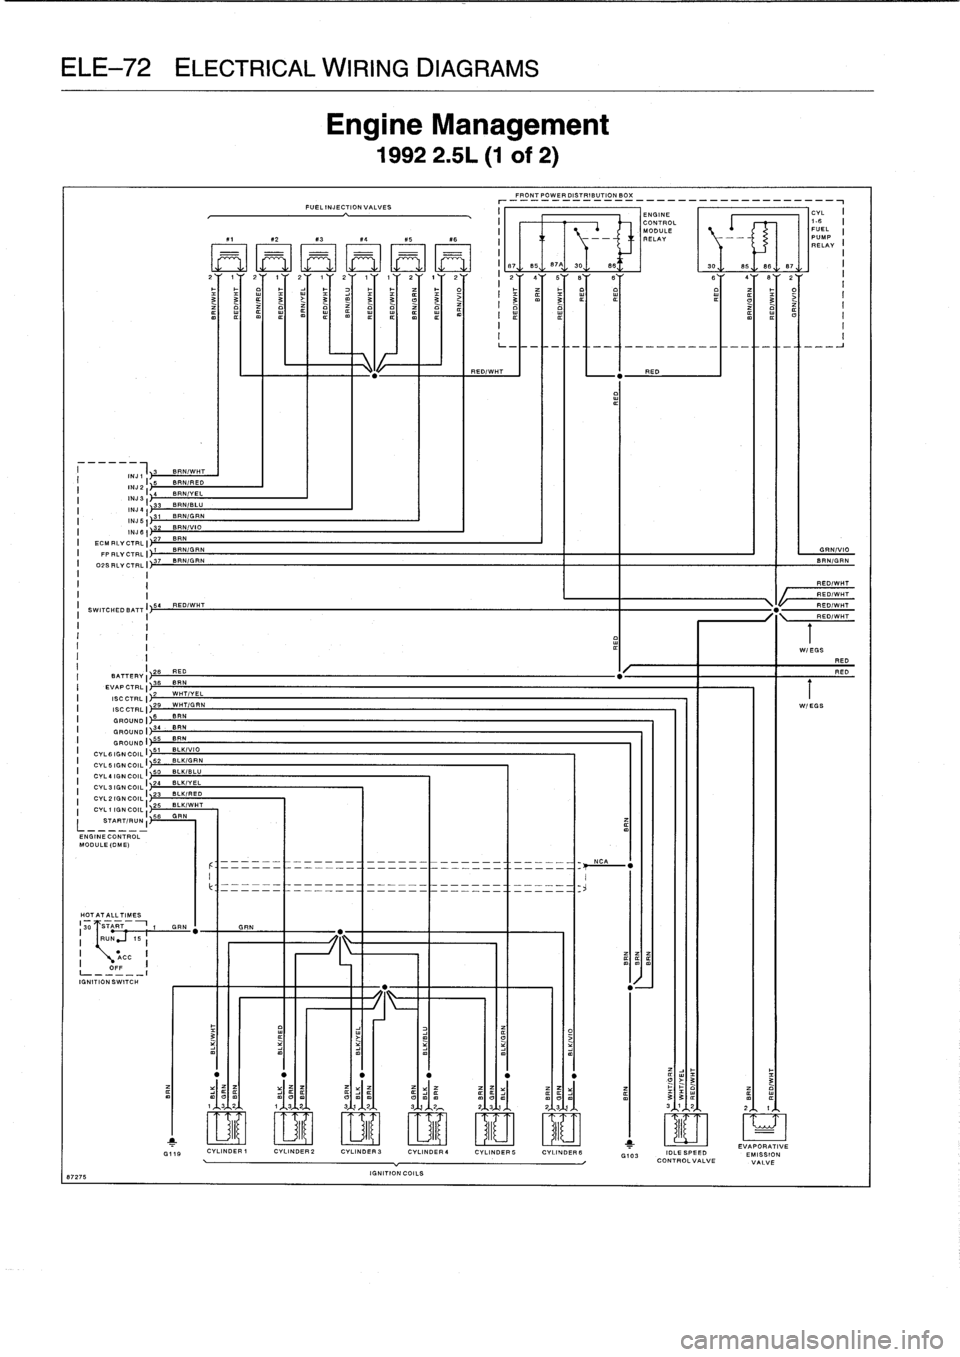 Bmw M3 1996 E36 Workshop Manual Wiring Diagram Page 556 Ele 72 Electrical Diagrams